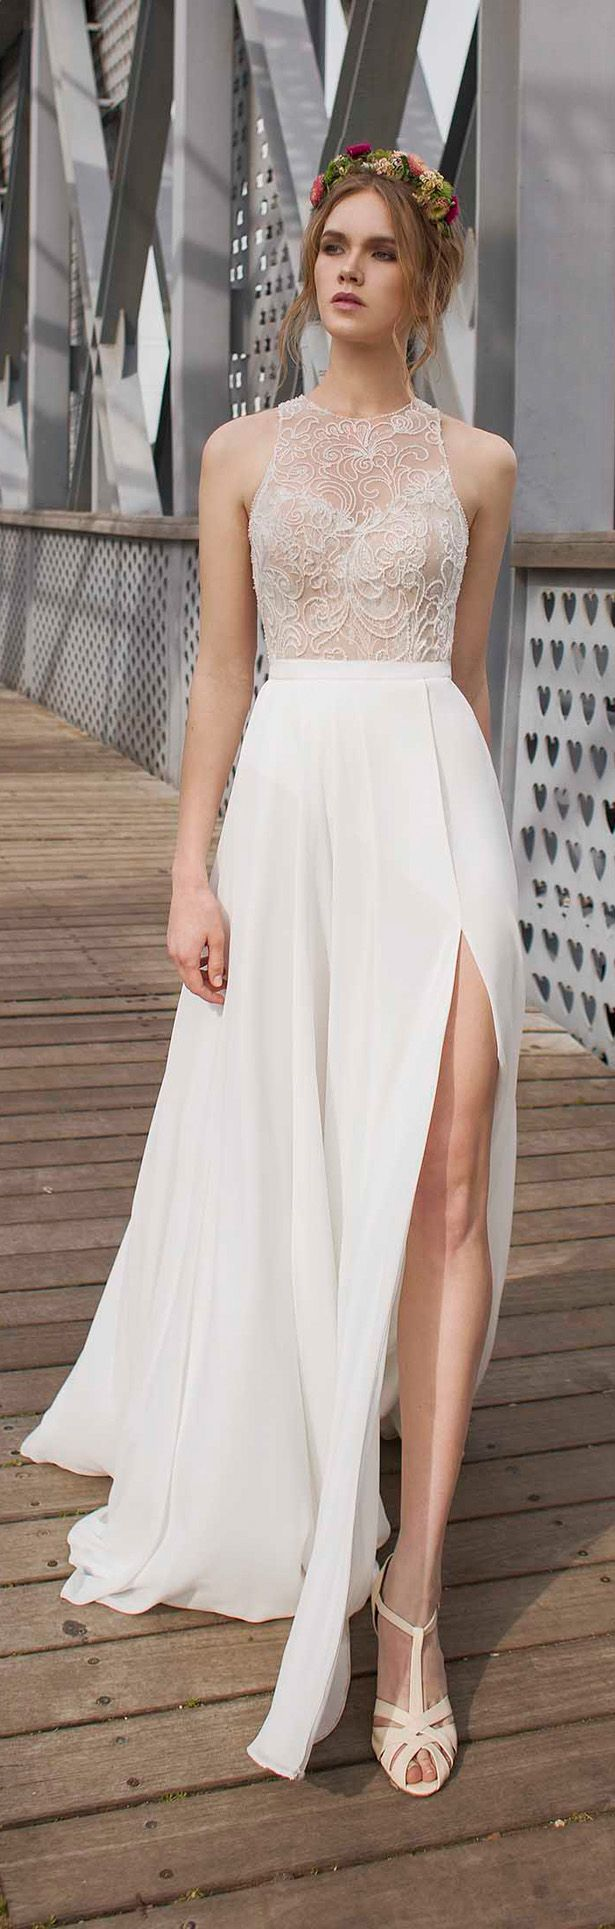 Civil Wedding Dresses limorrosen bridal - olivia SGCYCWY